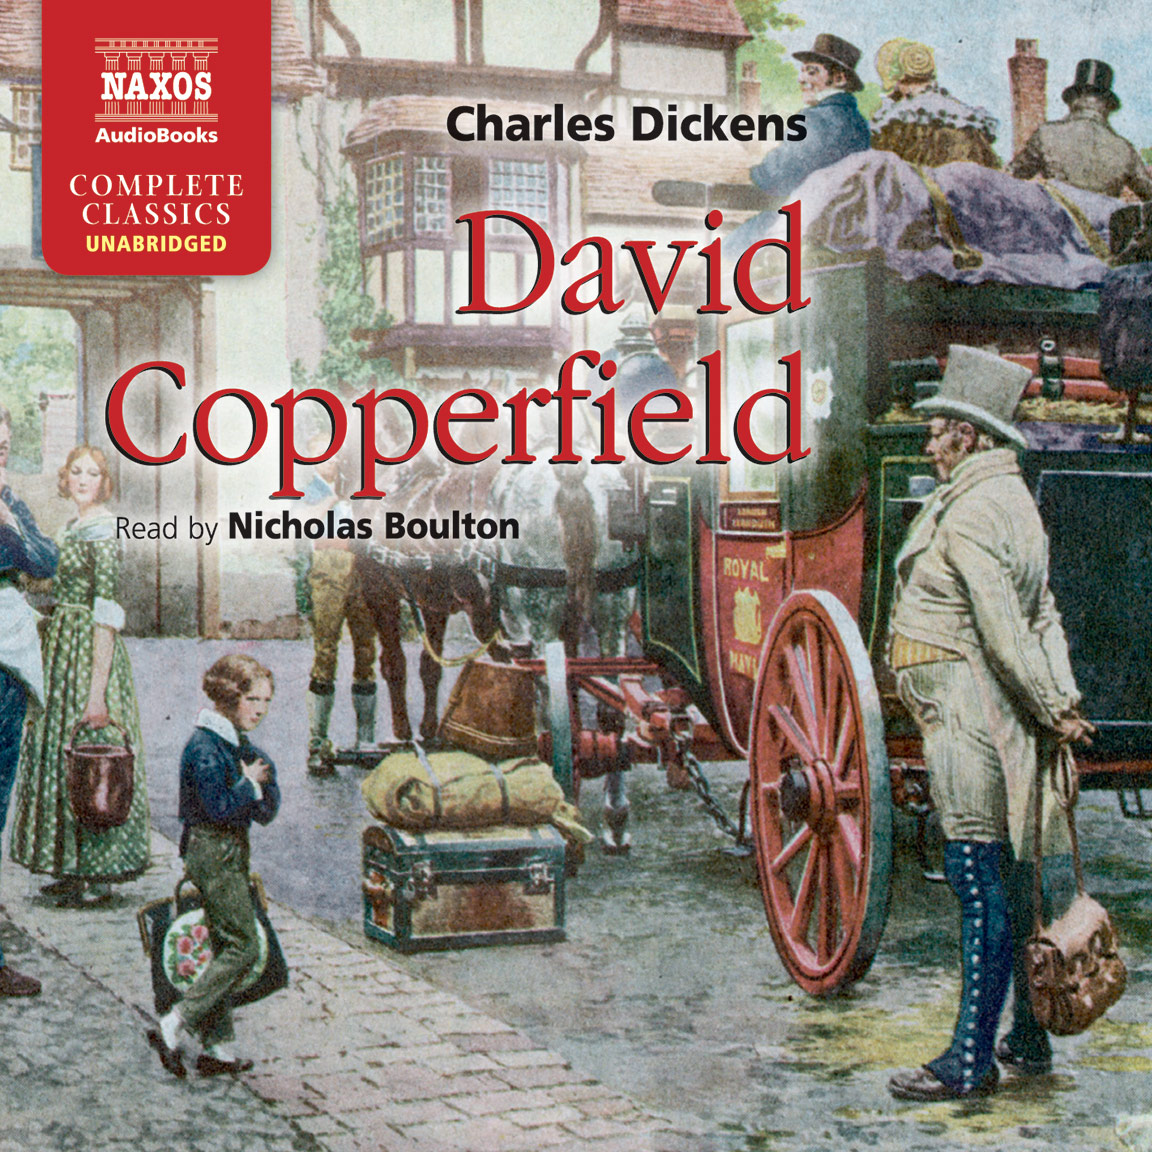 an analysis of david copperfield and oliver twist two novels by charles dickens David copperfield study guide contains a biography of charles dickens  quiz questions, major themes, characters, and a full summary and analysis about societal injustices than dickens' other novels, notably oliver twist and nicholas nickleby david copperfield two different portrayals of orphans in dickens.